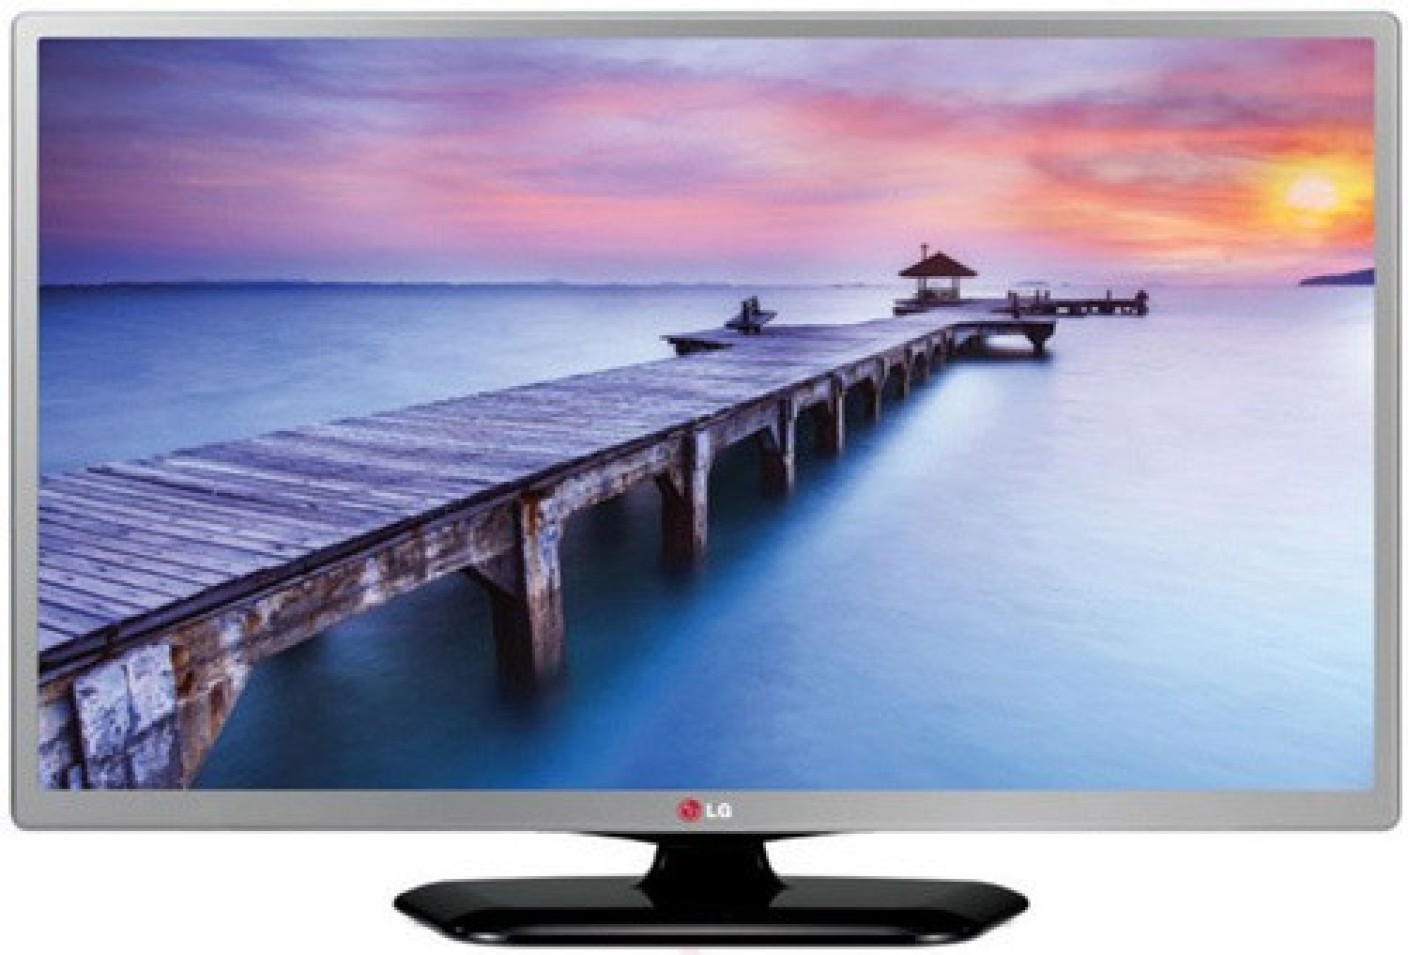 lg 60 cm 24 inch hd ready led tv online at best prices. Black Bedroom Furniture Sets. Home Design Ideas